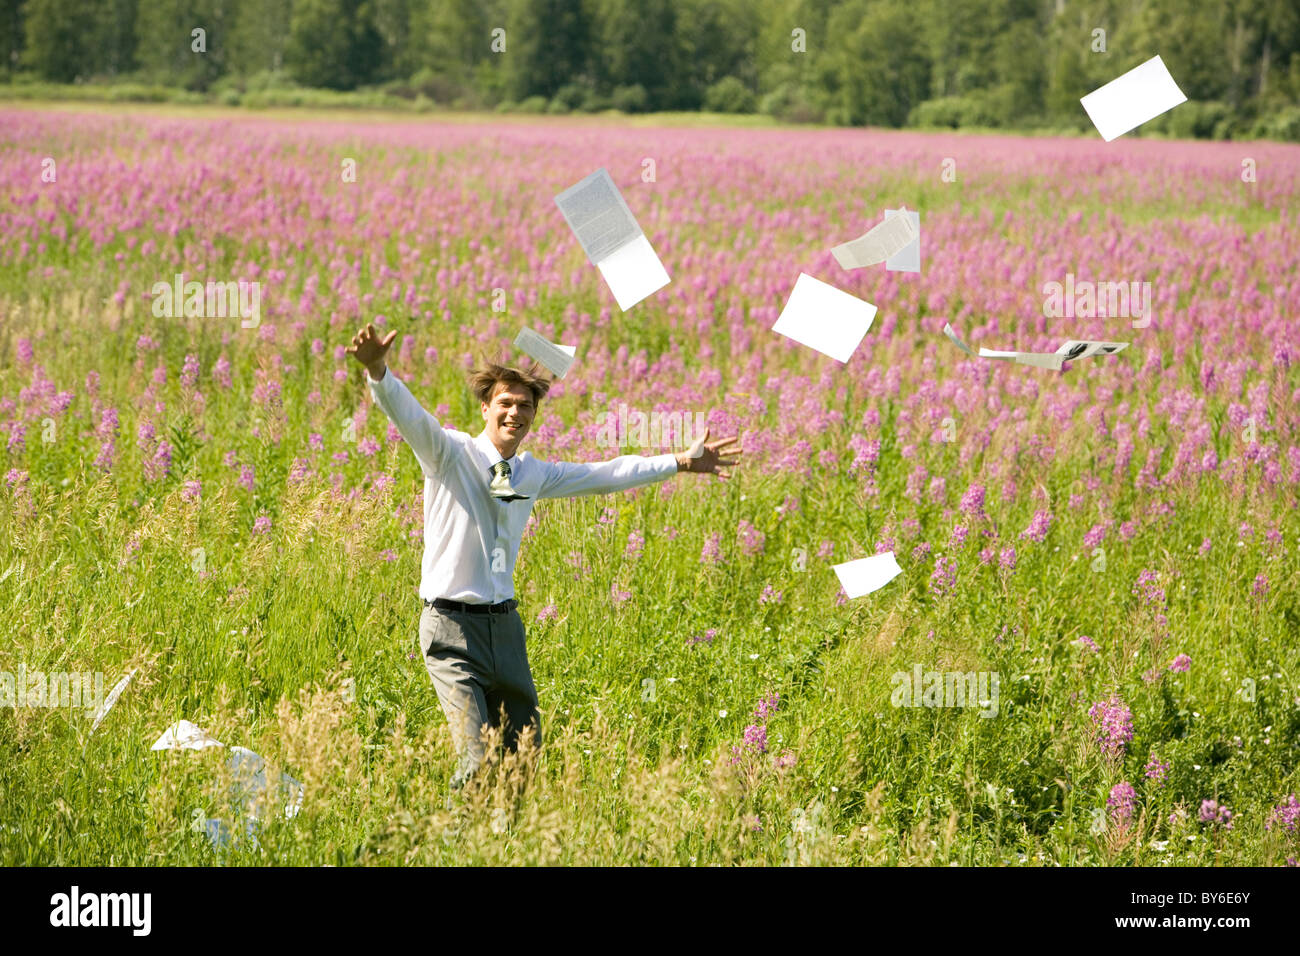 Image of joyful businessman on green meadow in summer with documents being flown by the wind - Stock Image